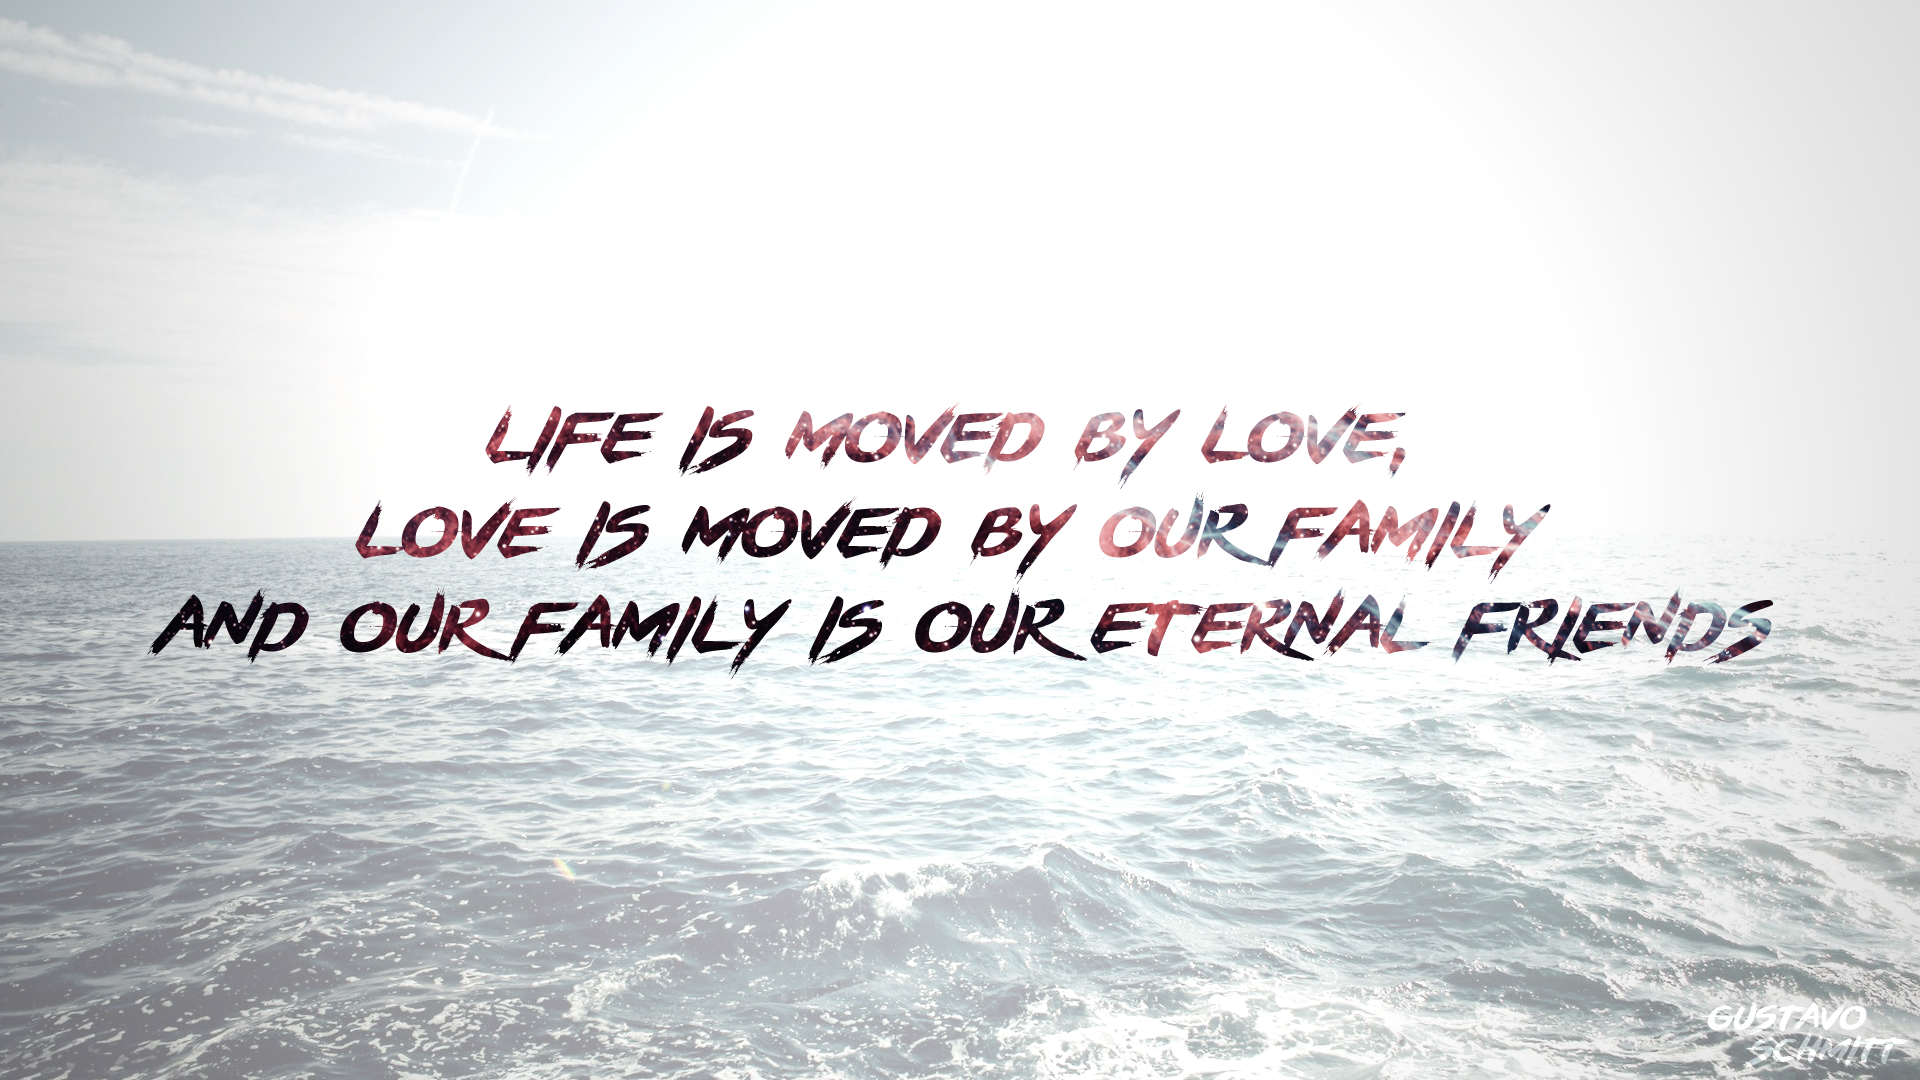 Family Wallpaper Quote Hd Wish: Life/Love/Family Wallpaper Full HD By BrGustavoLS On